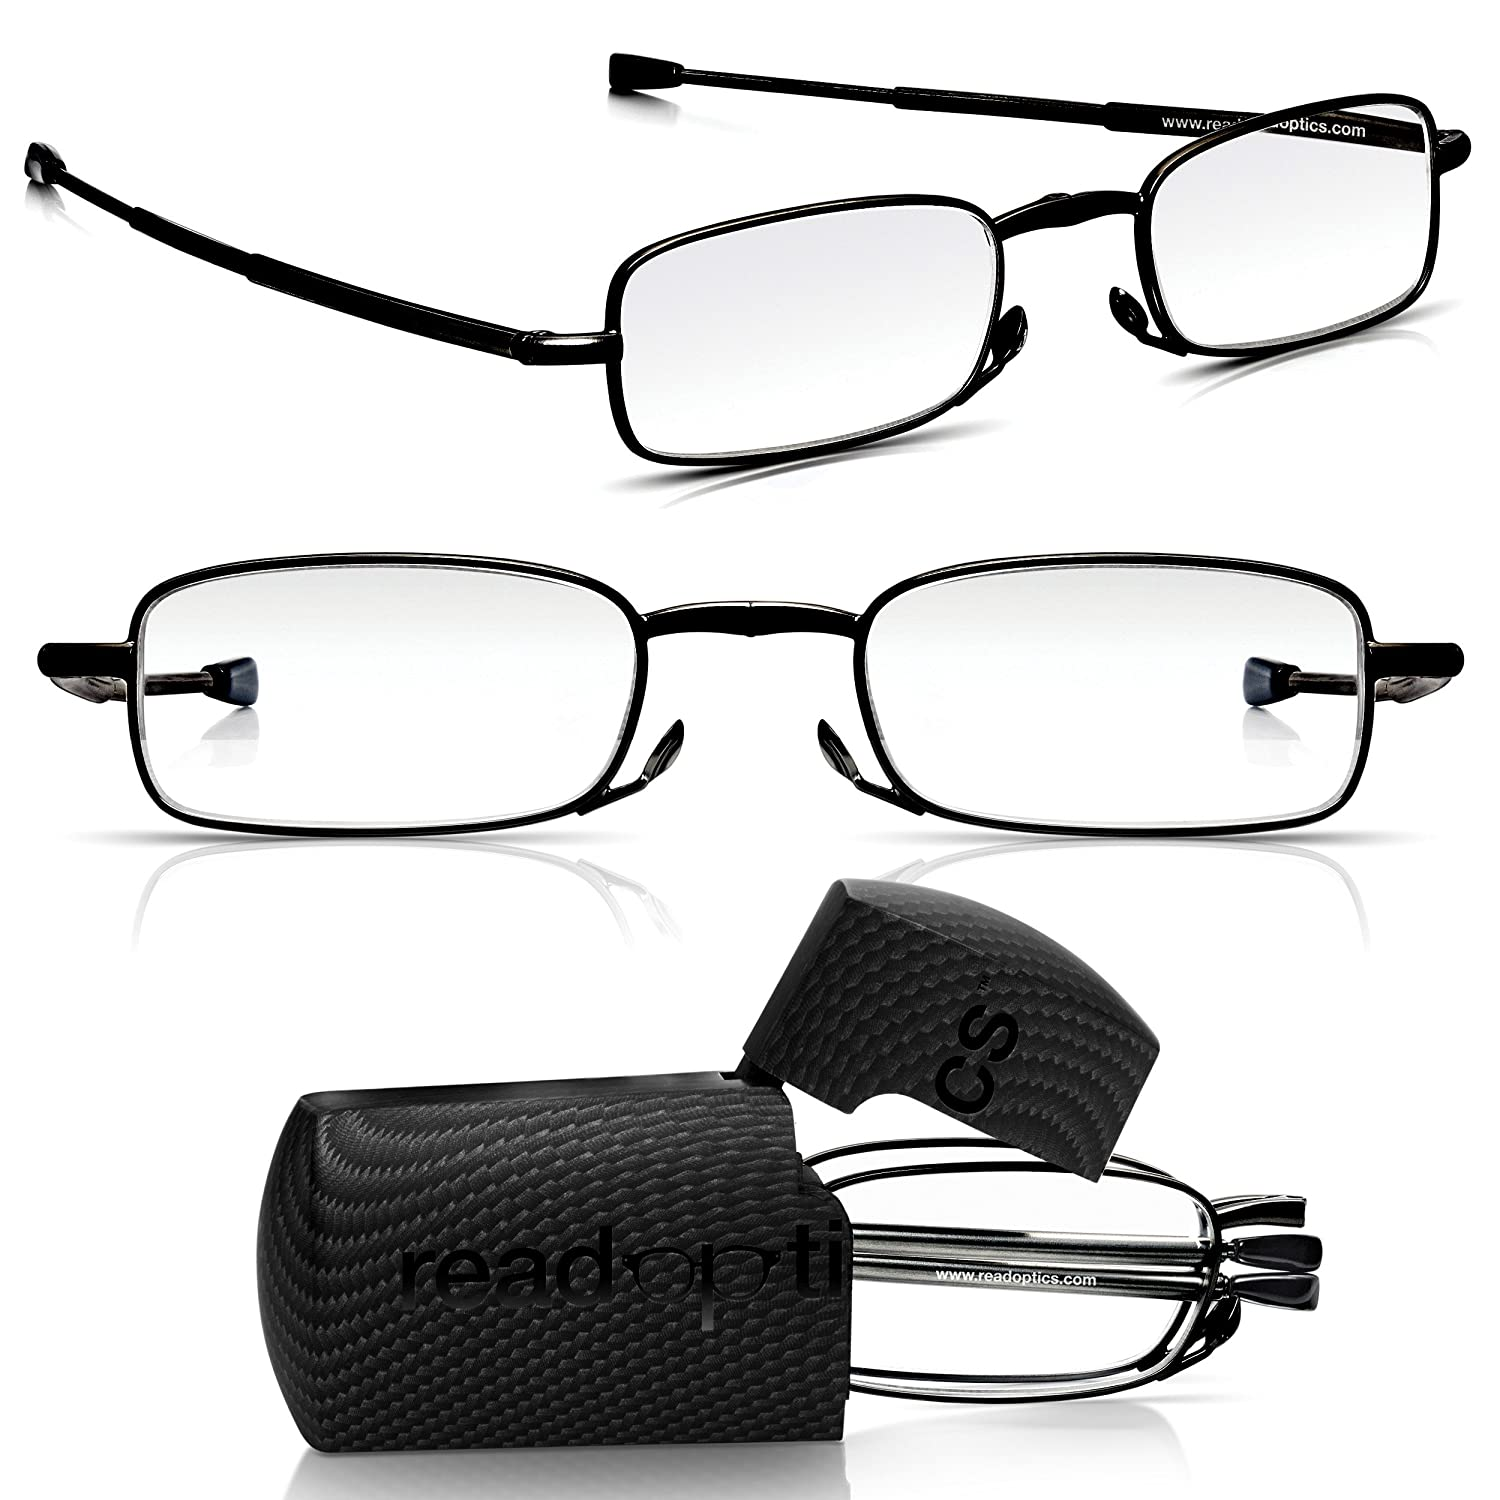 Mens//Womens Foldable Patented Compact Spectacles Fold-Away in Ultra Thin Travel Case Read Optics Flat Folding Readers Glasses 2.5// 3// Lifetime Guarantee 1// 2// 3.5 Premium Difuzer/™ Lenses 1.5//